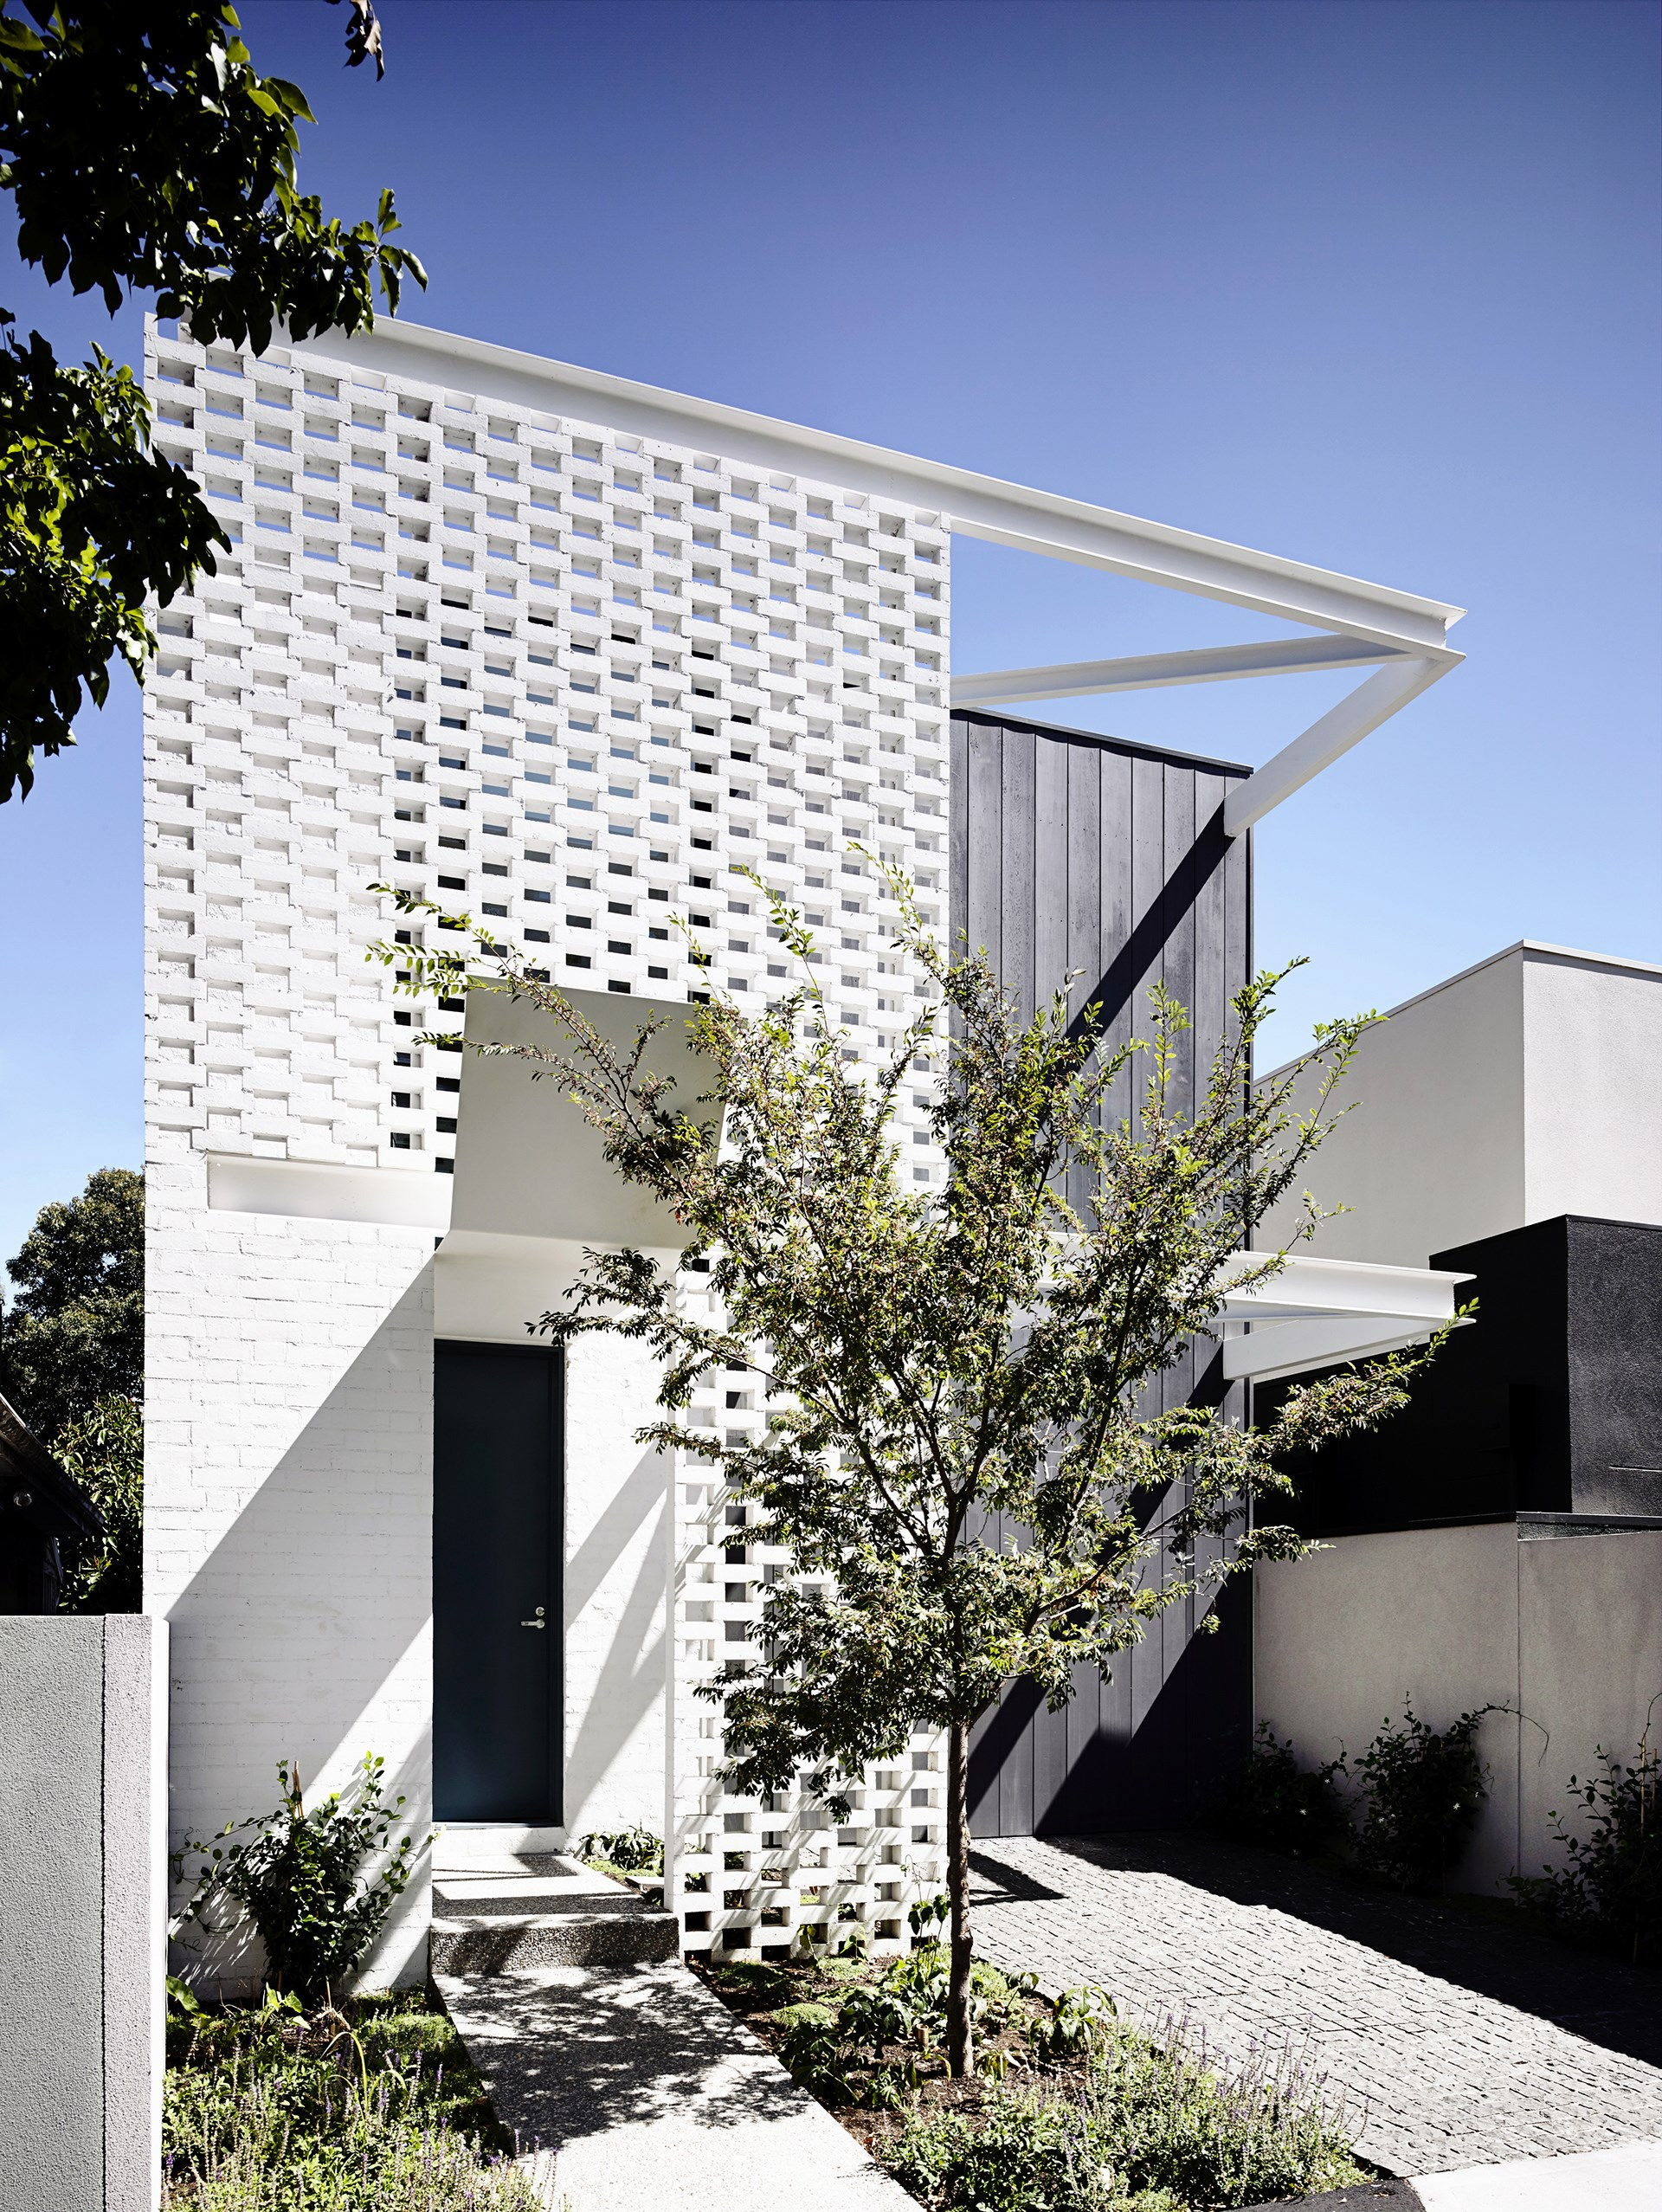 See more of this [luxury brick and steel architectural feat](http://www.homestolove.com.au/a-luxury-brick-and-steel-architectural-feat-2453). Photo: Derek Swalwell / *Belle*